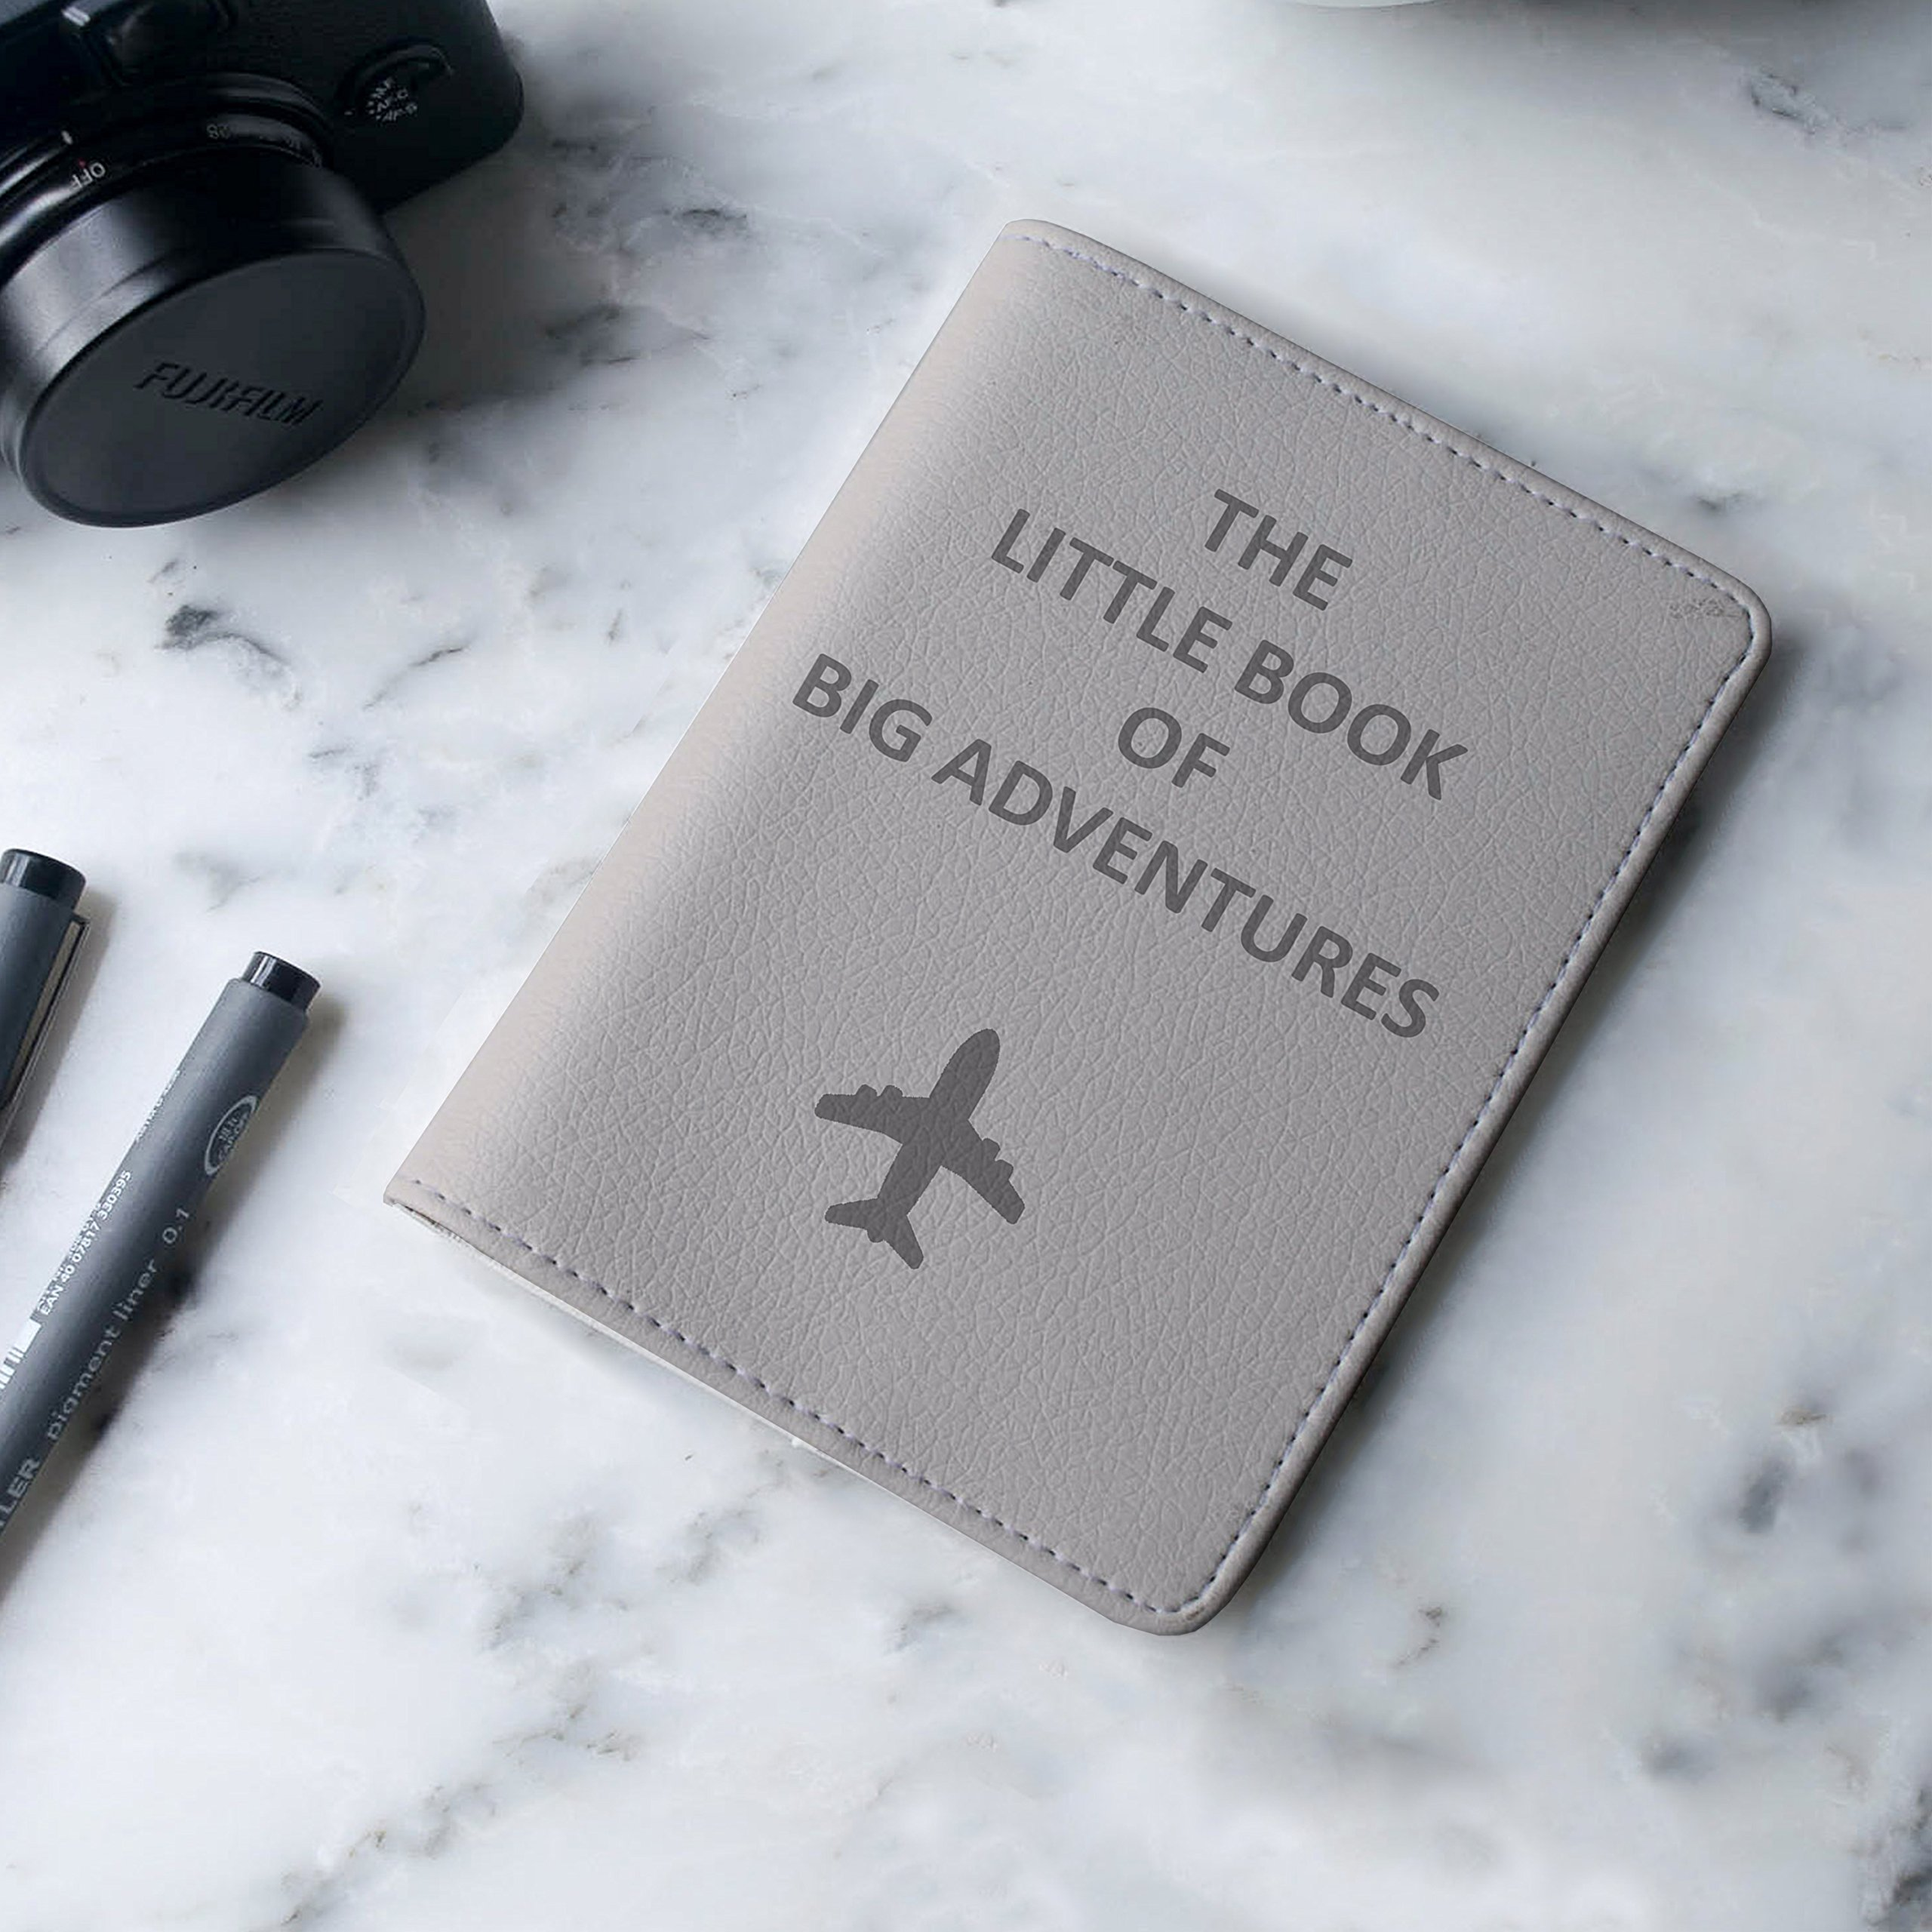 The Little Book Of Big Adventures - Multicolored by Handmade Curious (Image #4)